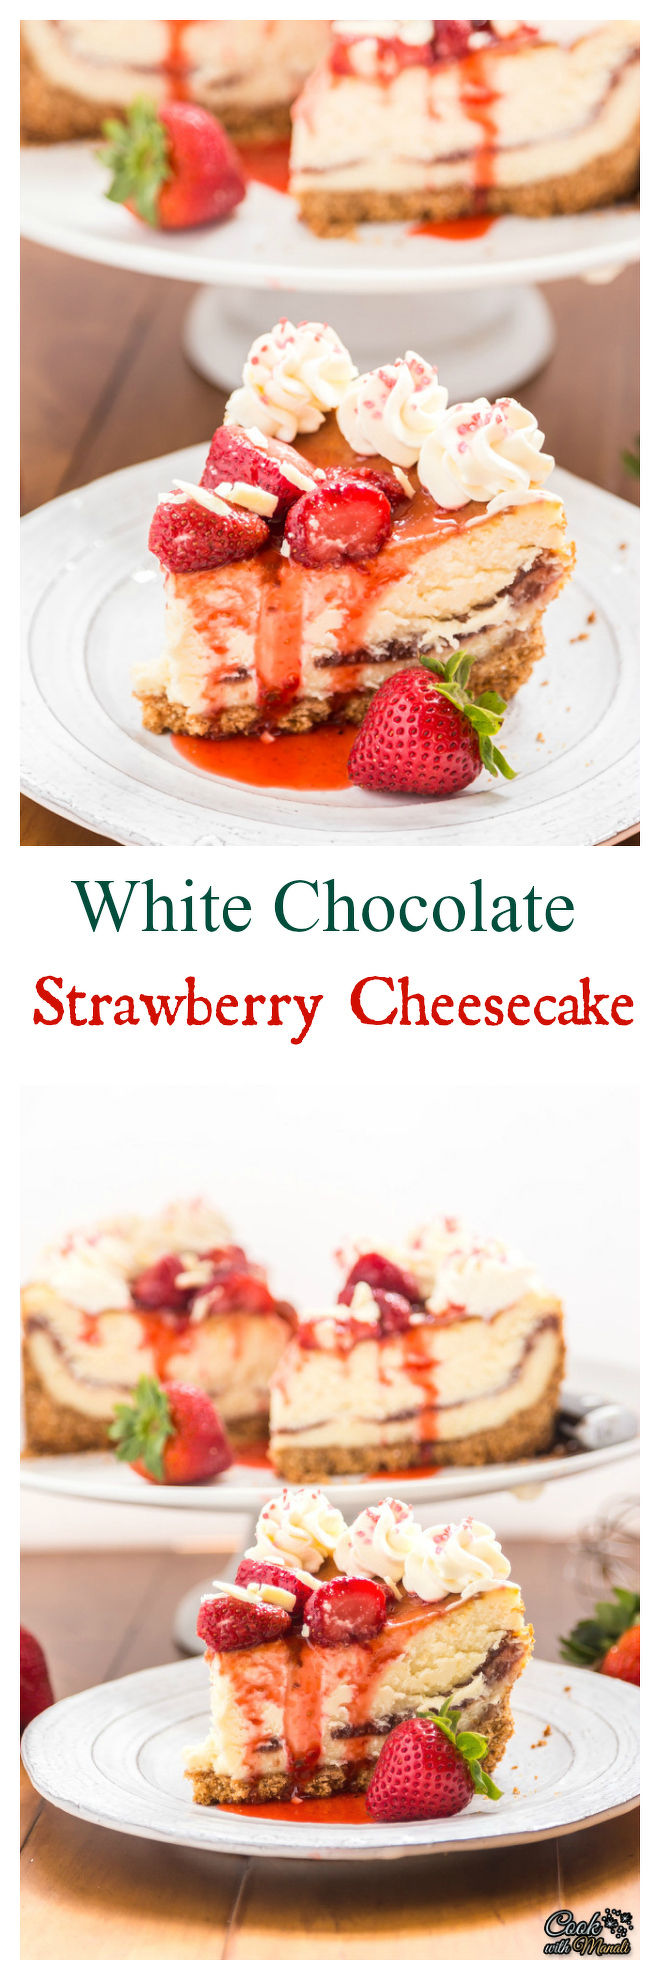 Strawberry And White Chocolate Mini Cheesecakes Recipe — Dishmaps